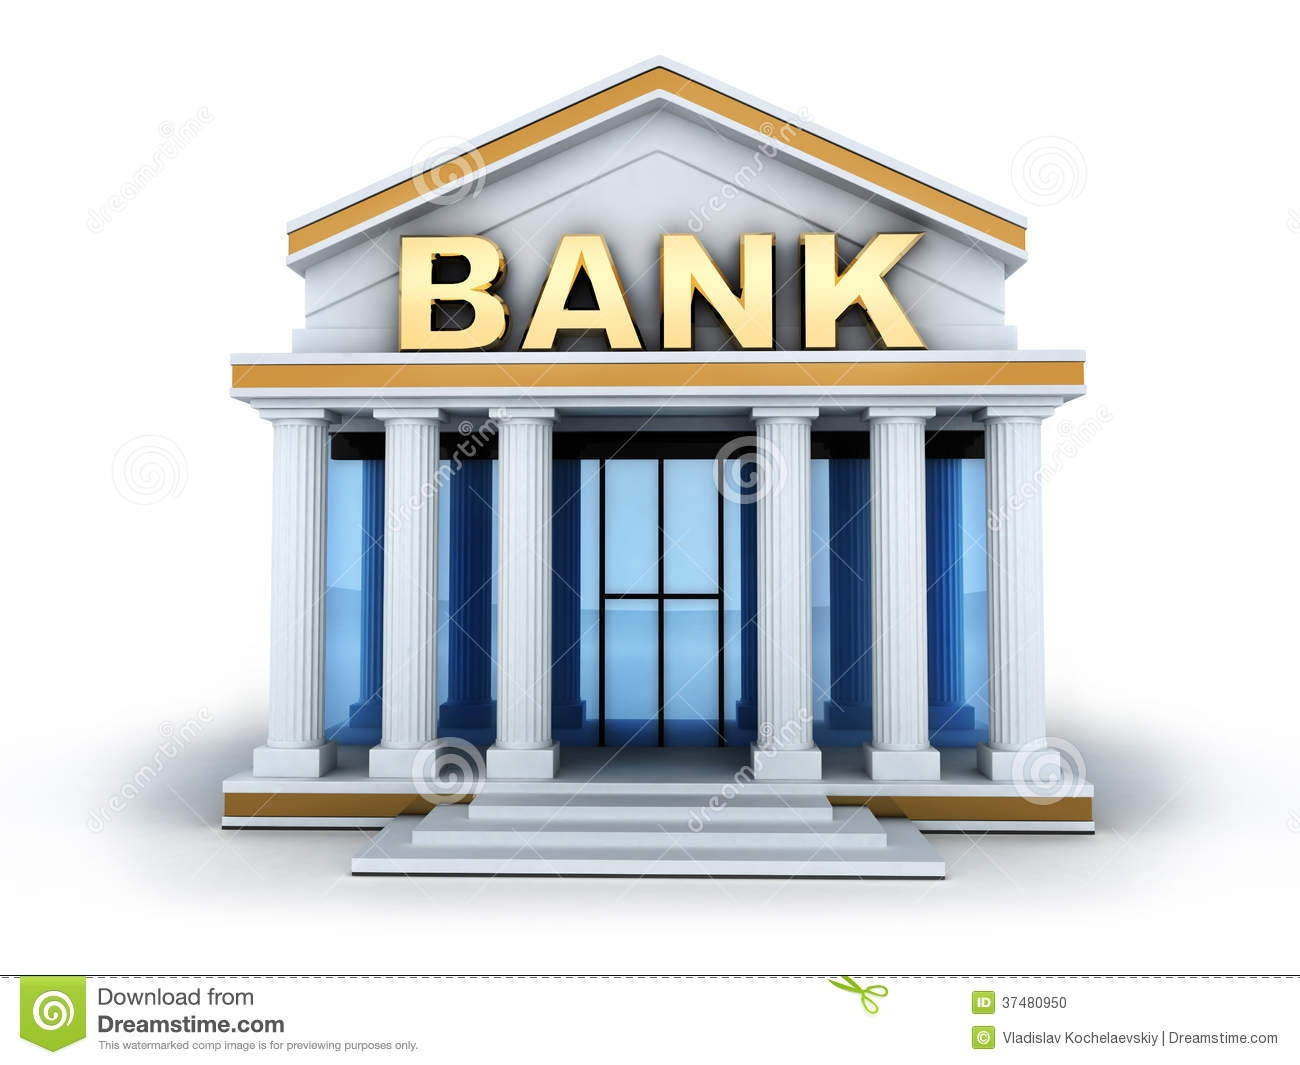 3509 Bank free clipart.